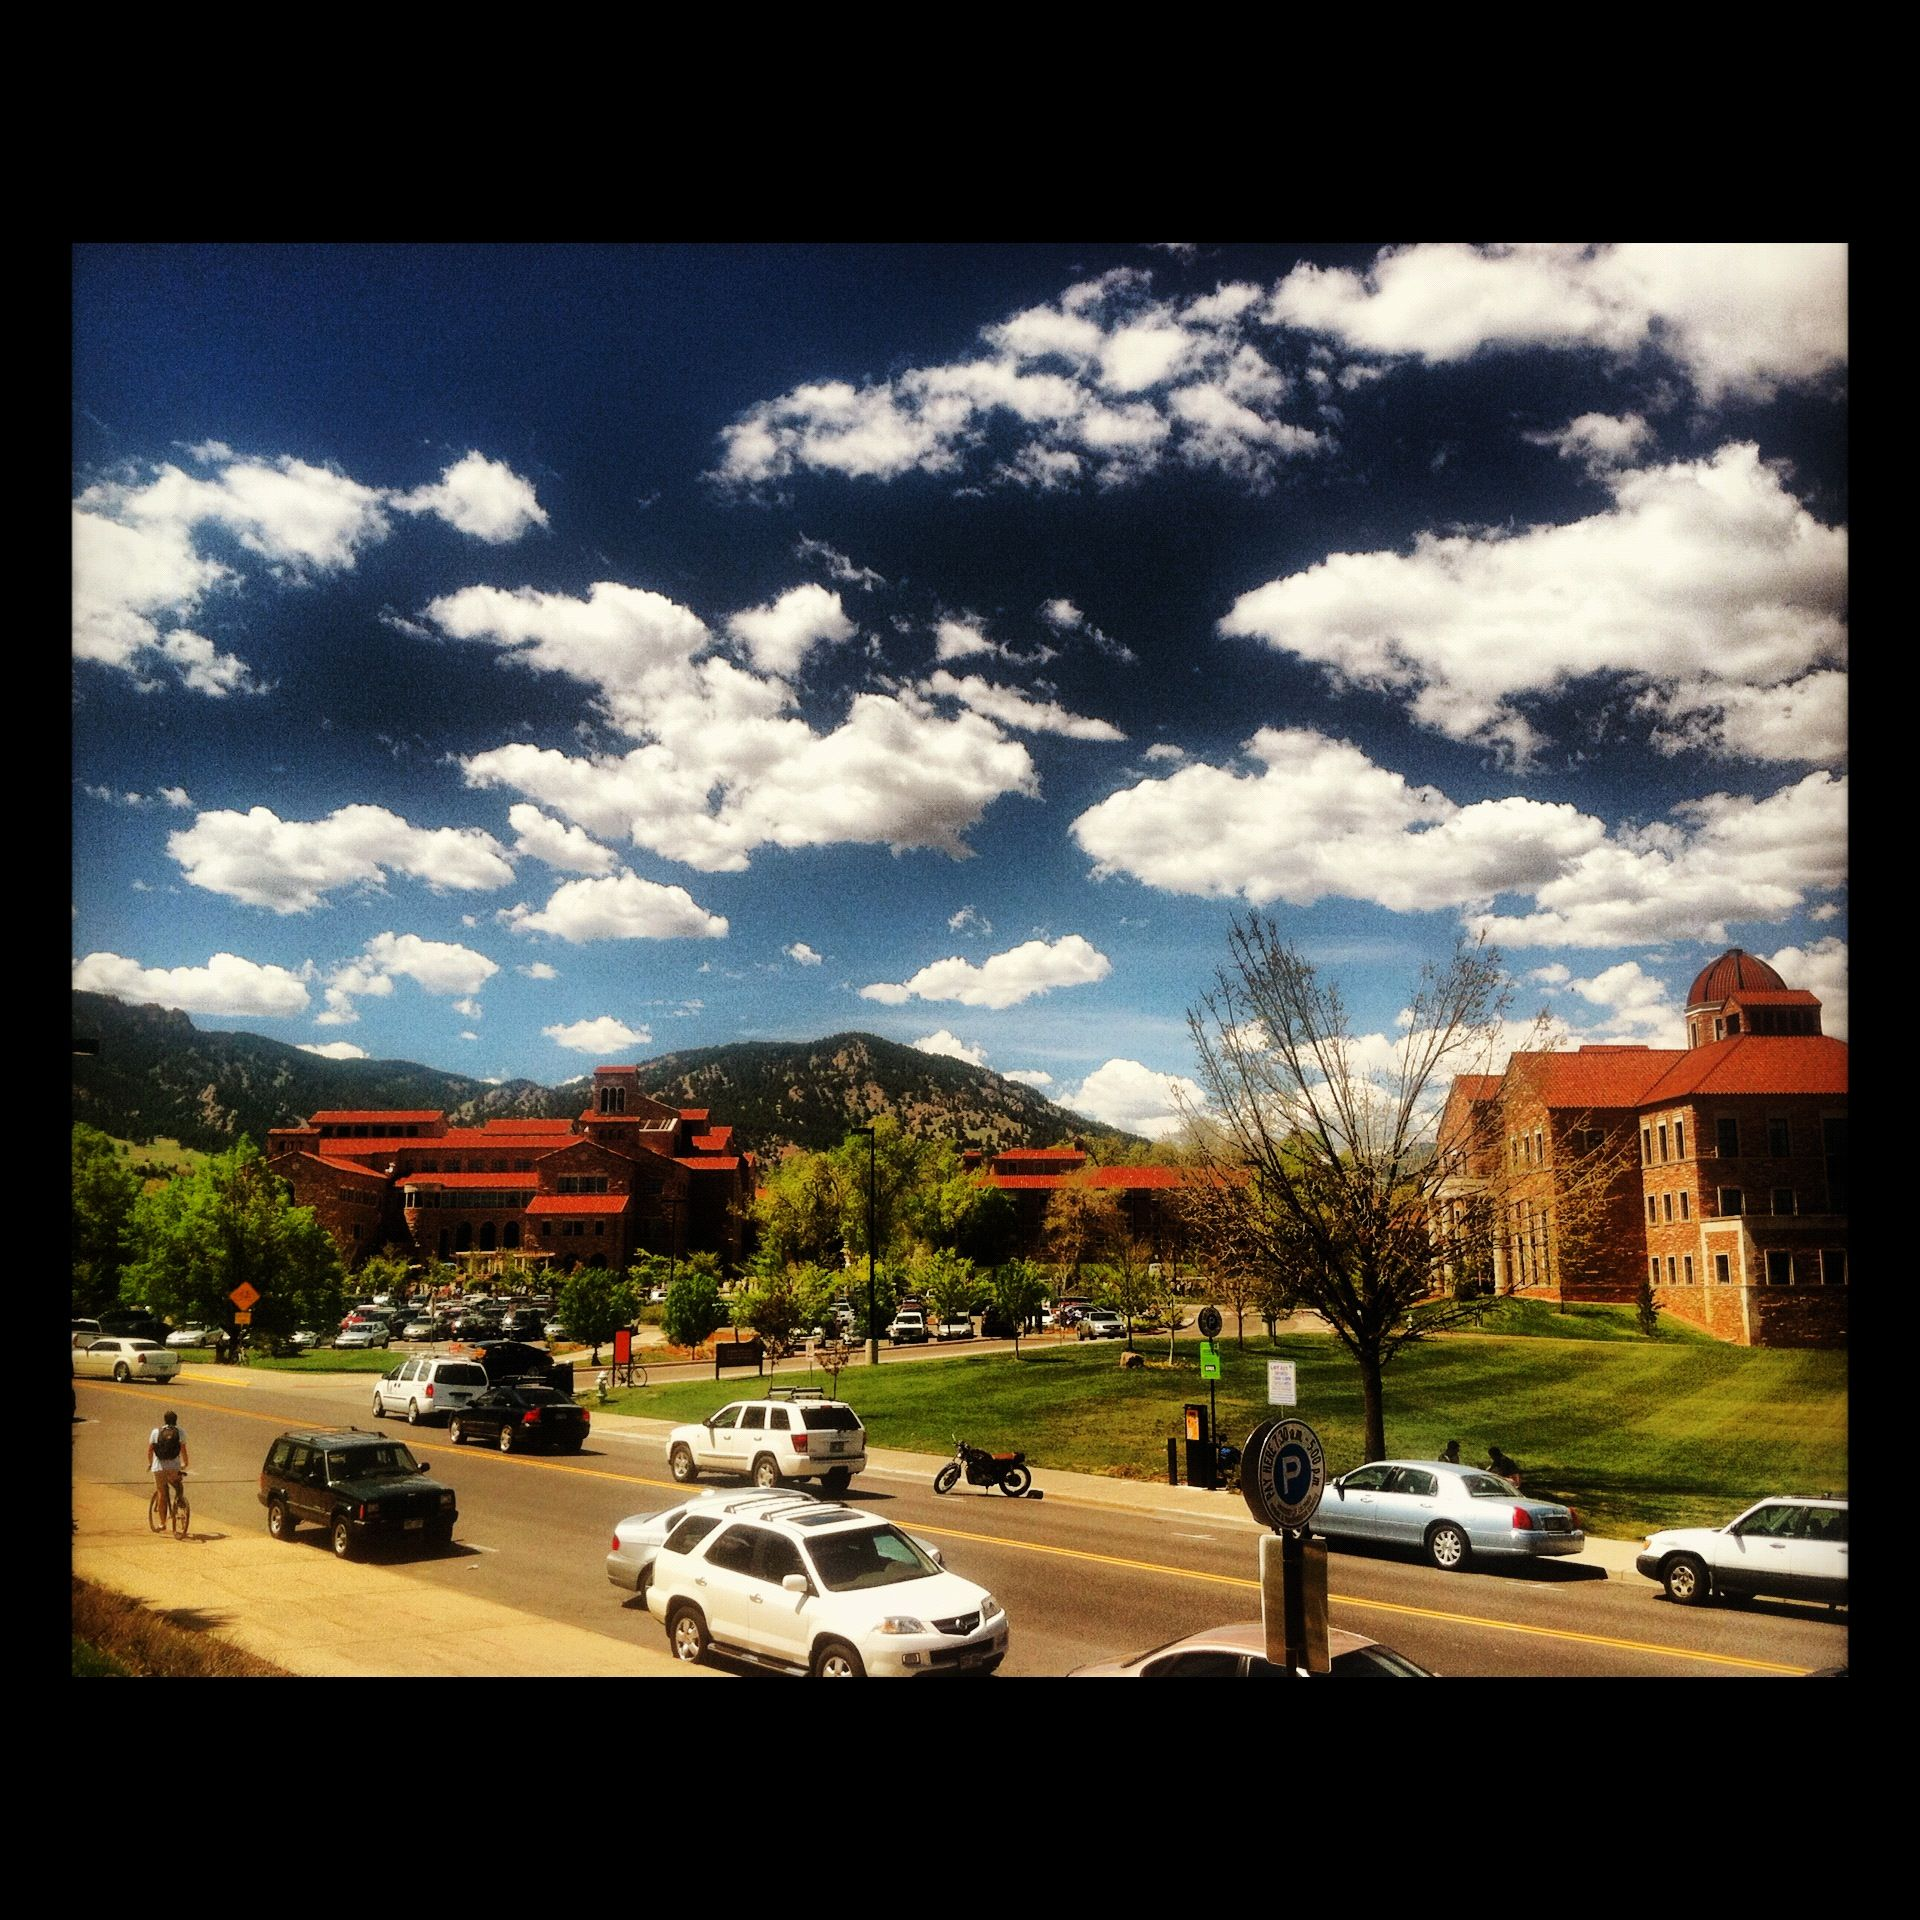 cu boulder campus instagram photos cus d amato cu boulder campus